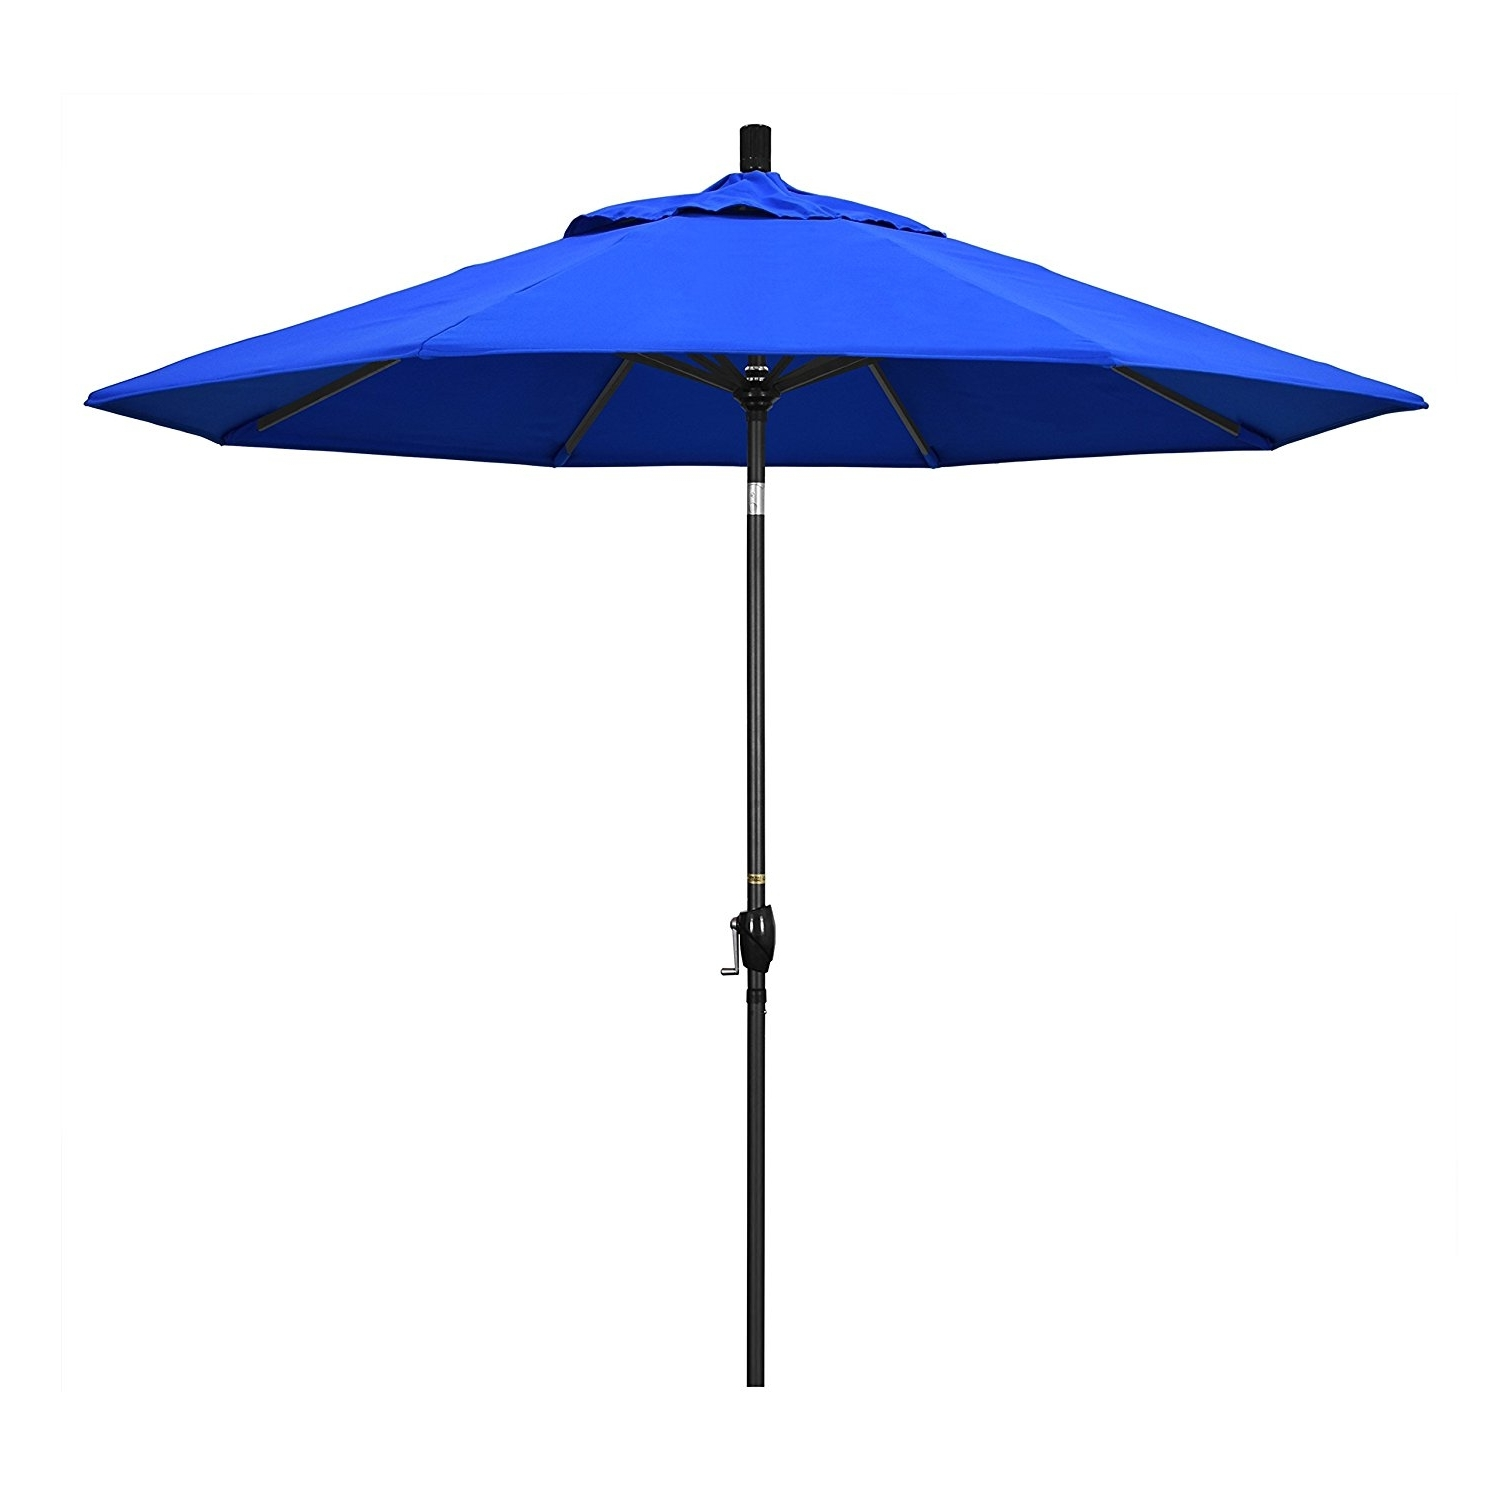 Fashionable Patio Umbrellas With White Pole Throughout Best Sunbrella Umbrellas (View 7 of 20)